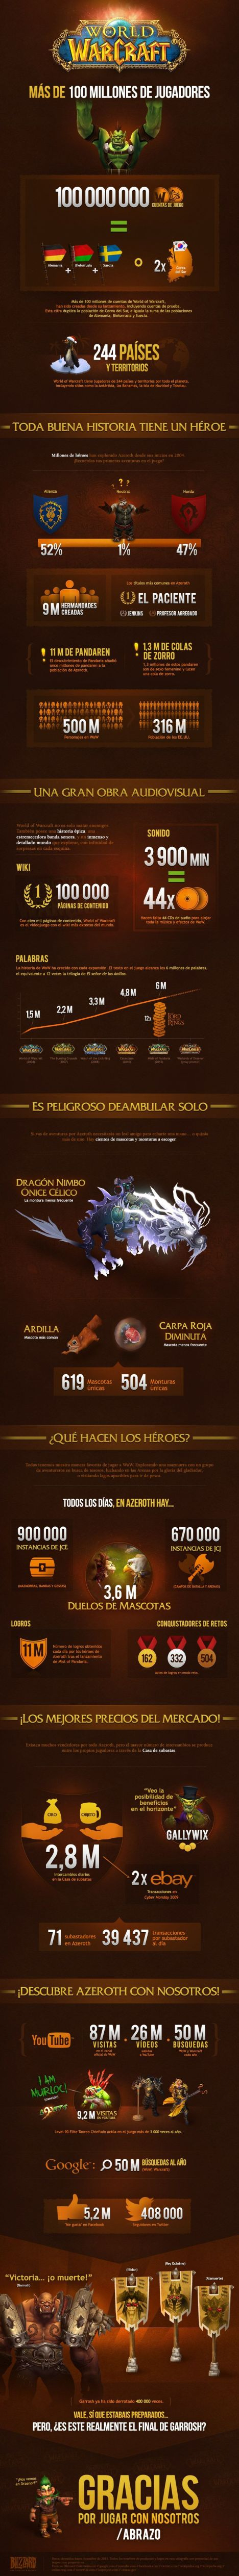 World of Warcraft infografía 2014